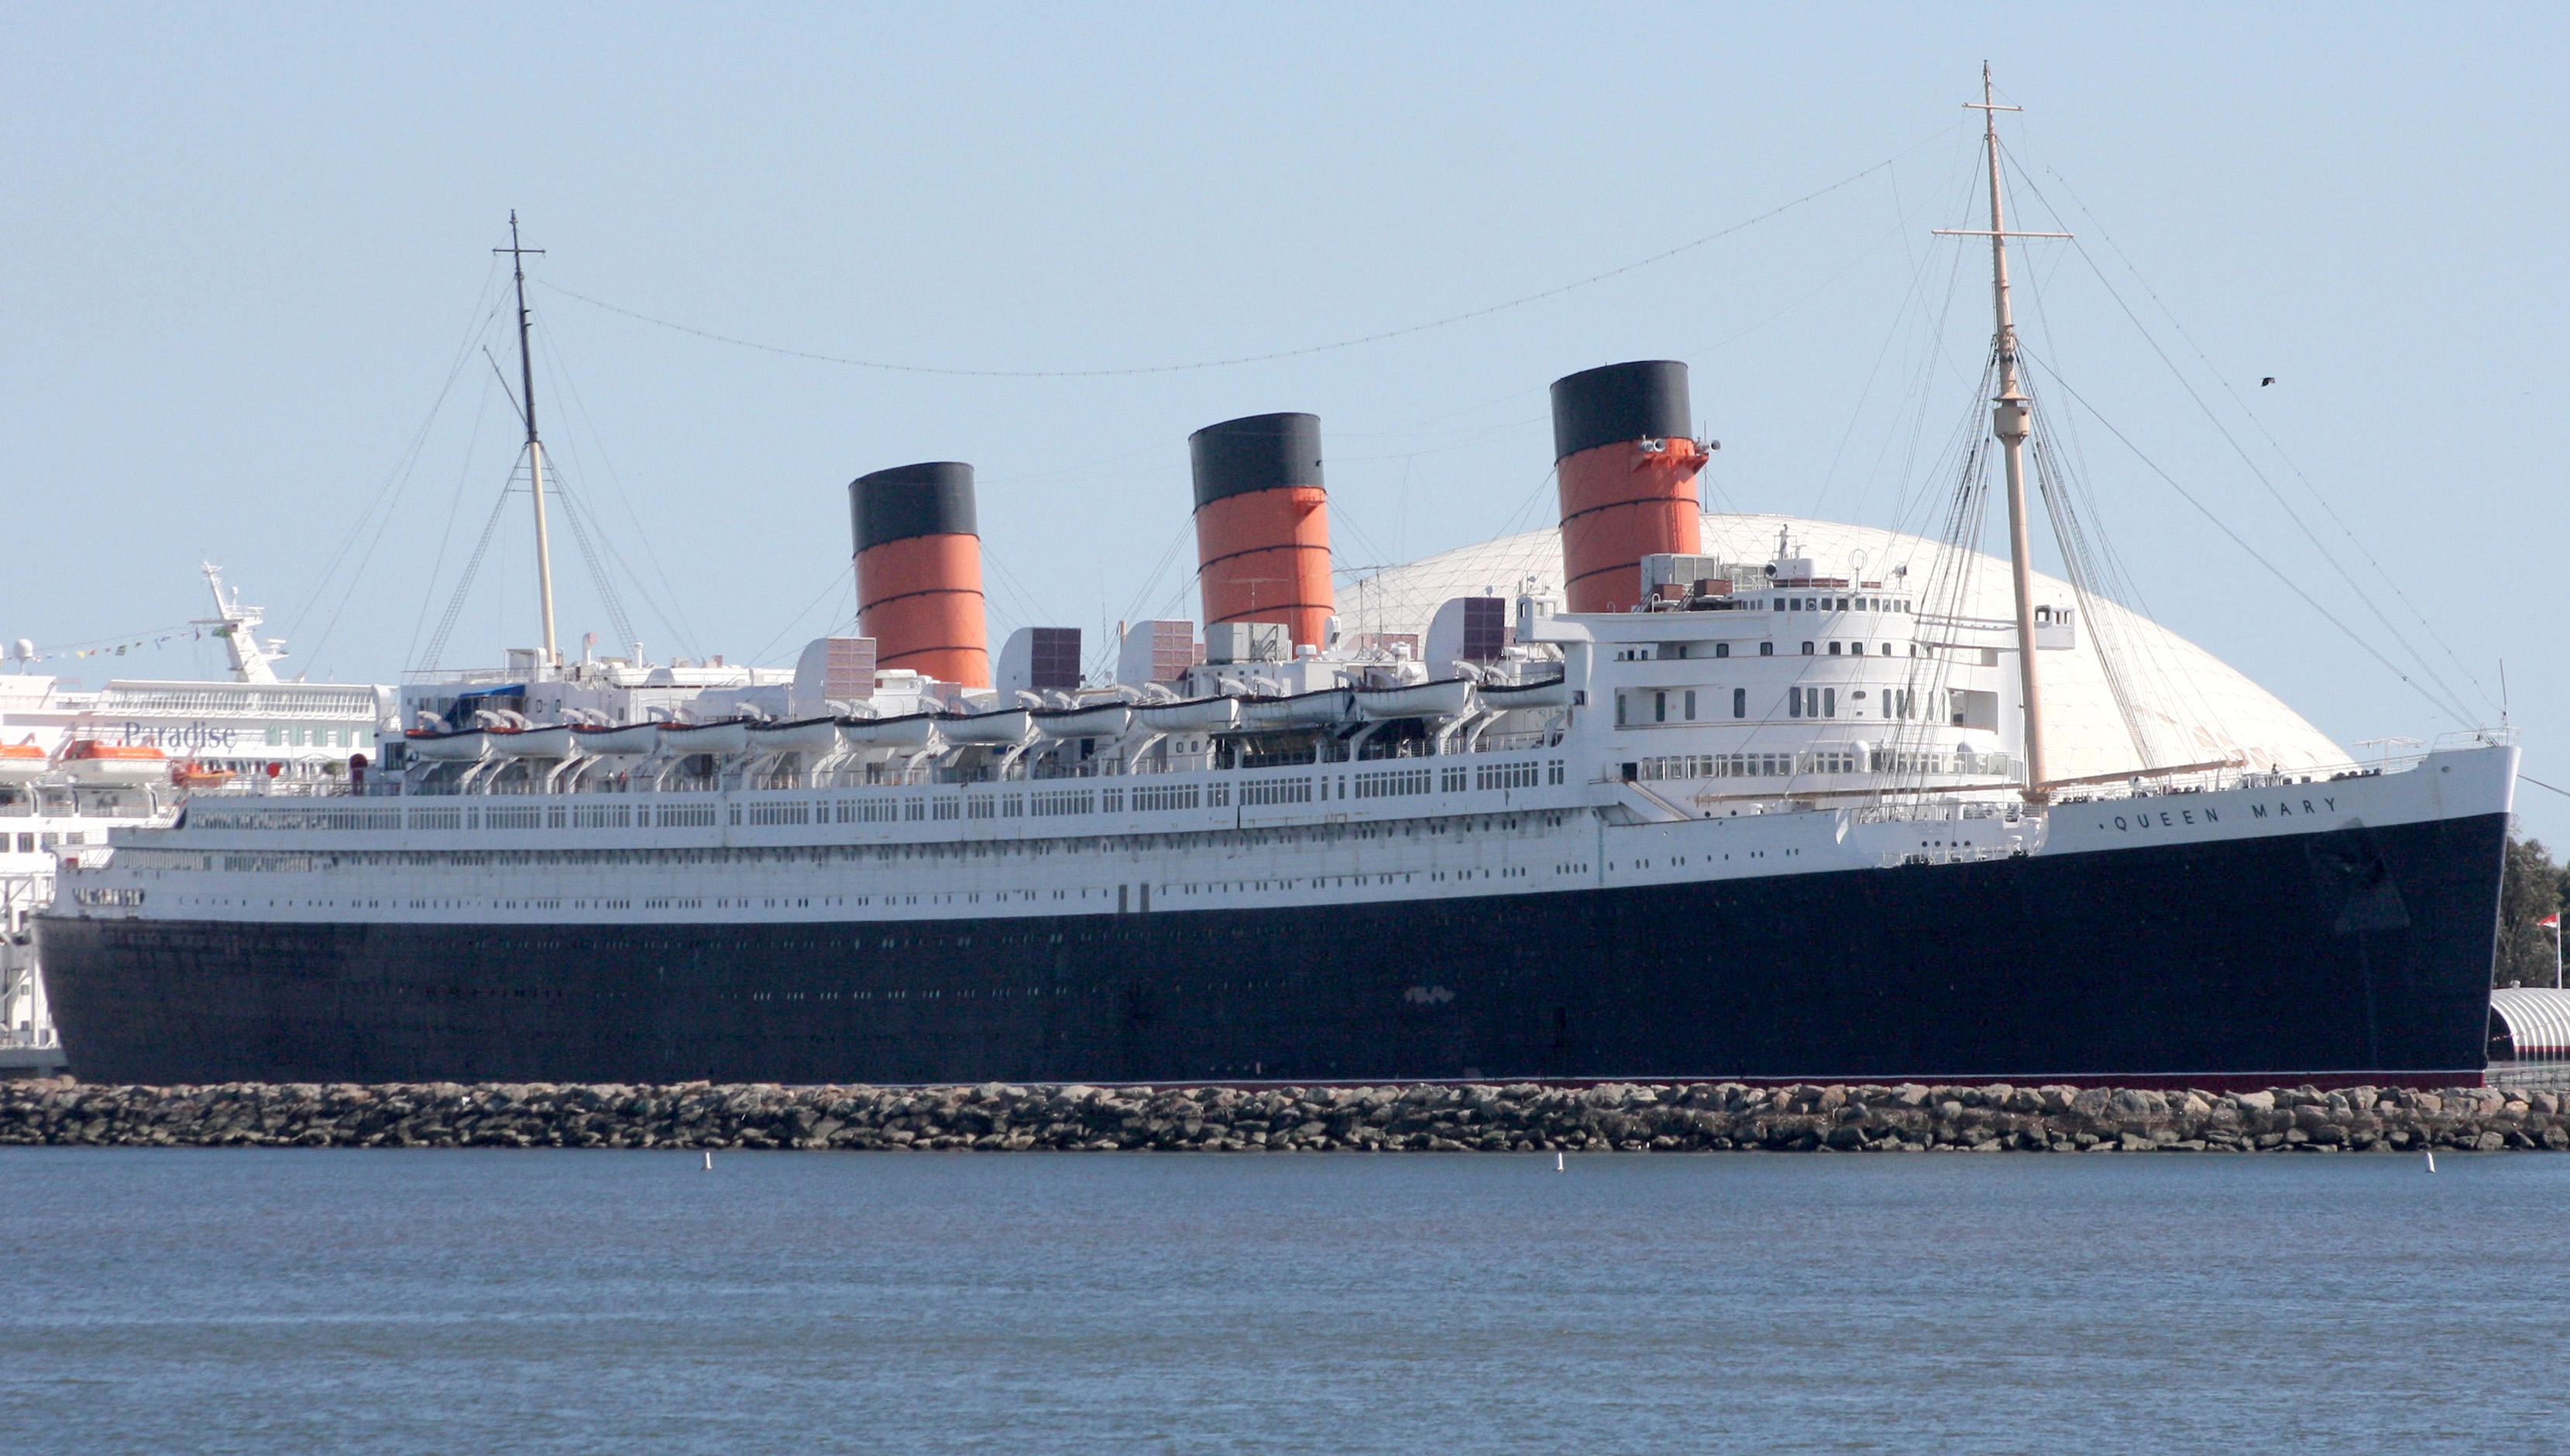 File:RMS Queen Mary at Long Beach.jpg - Wikimedia Commons